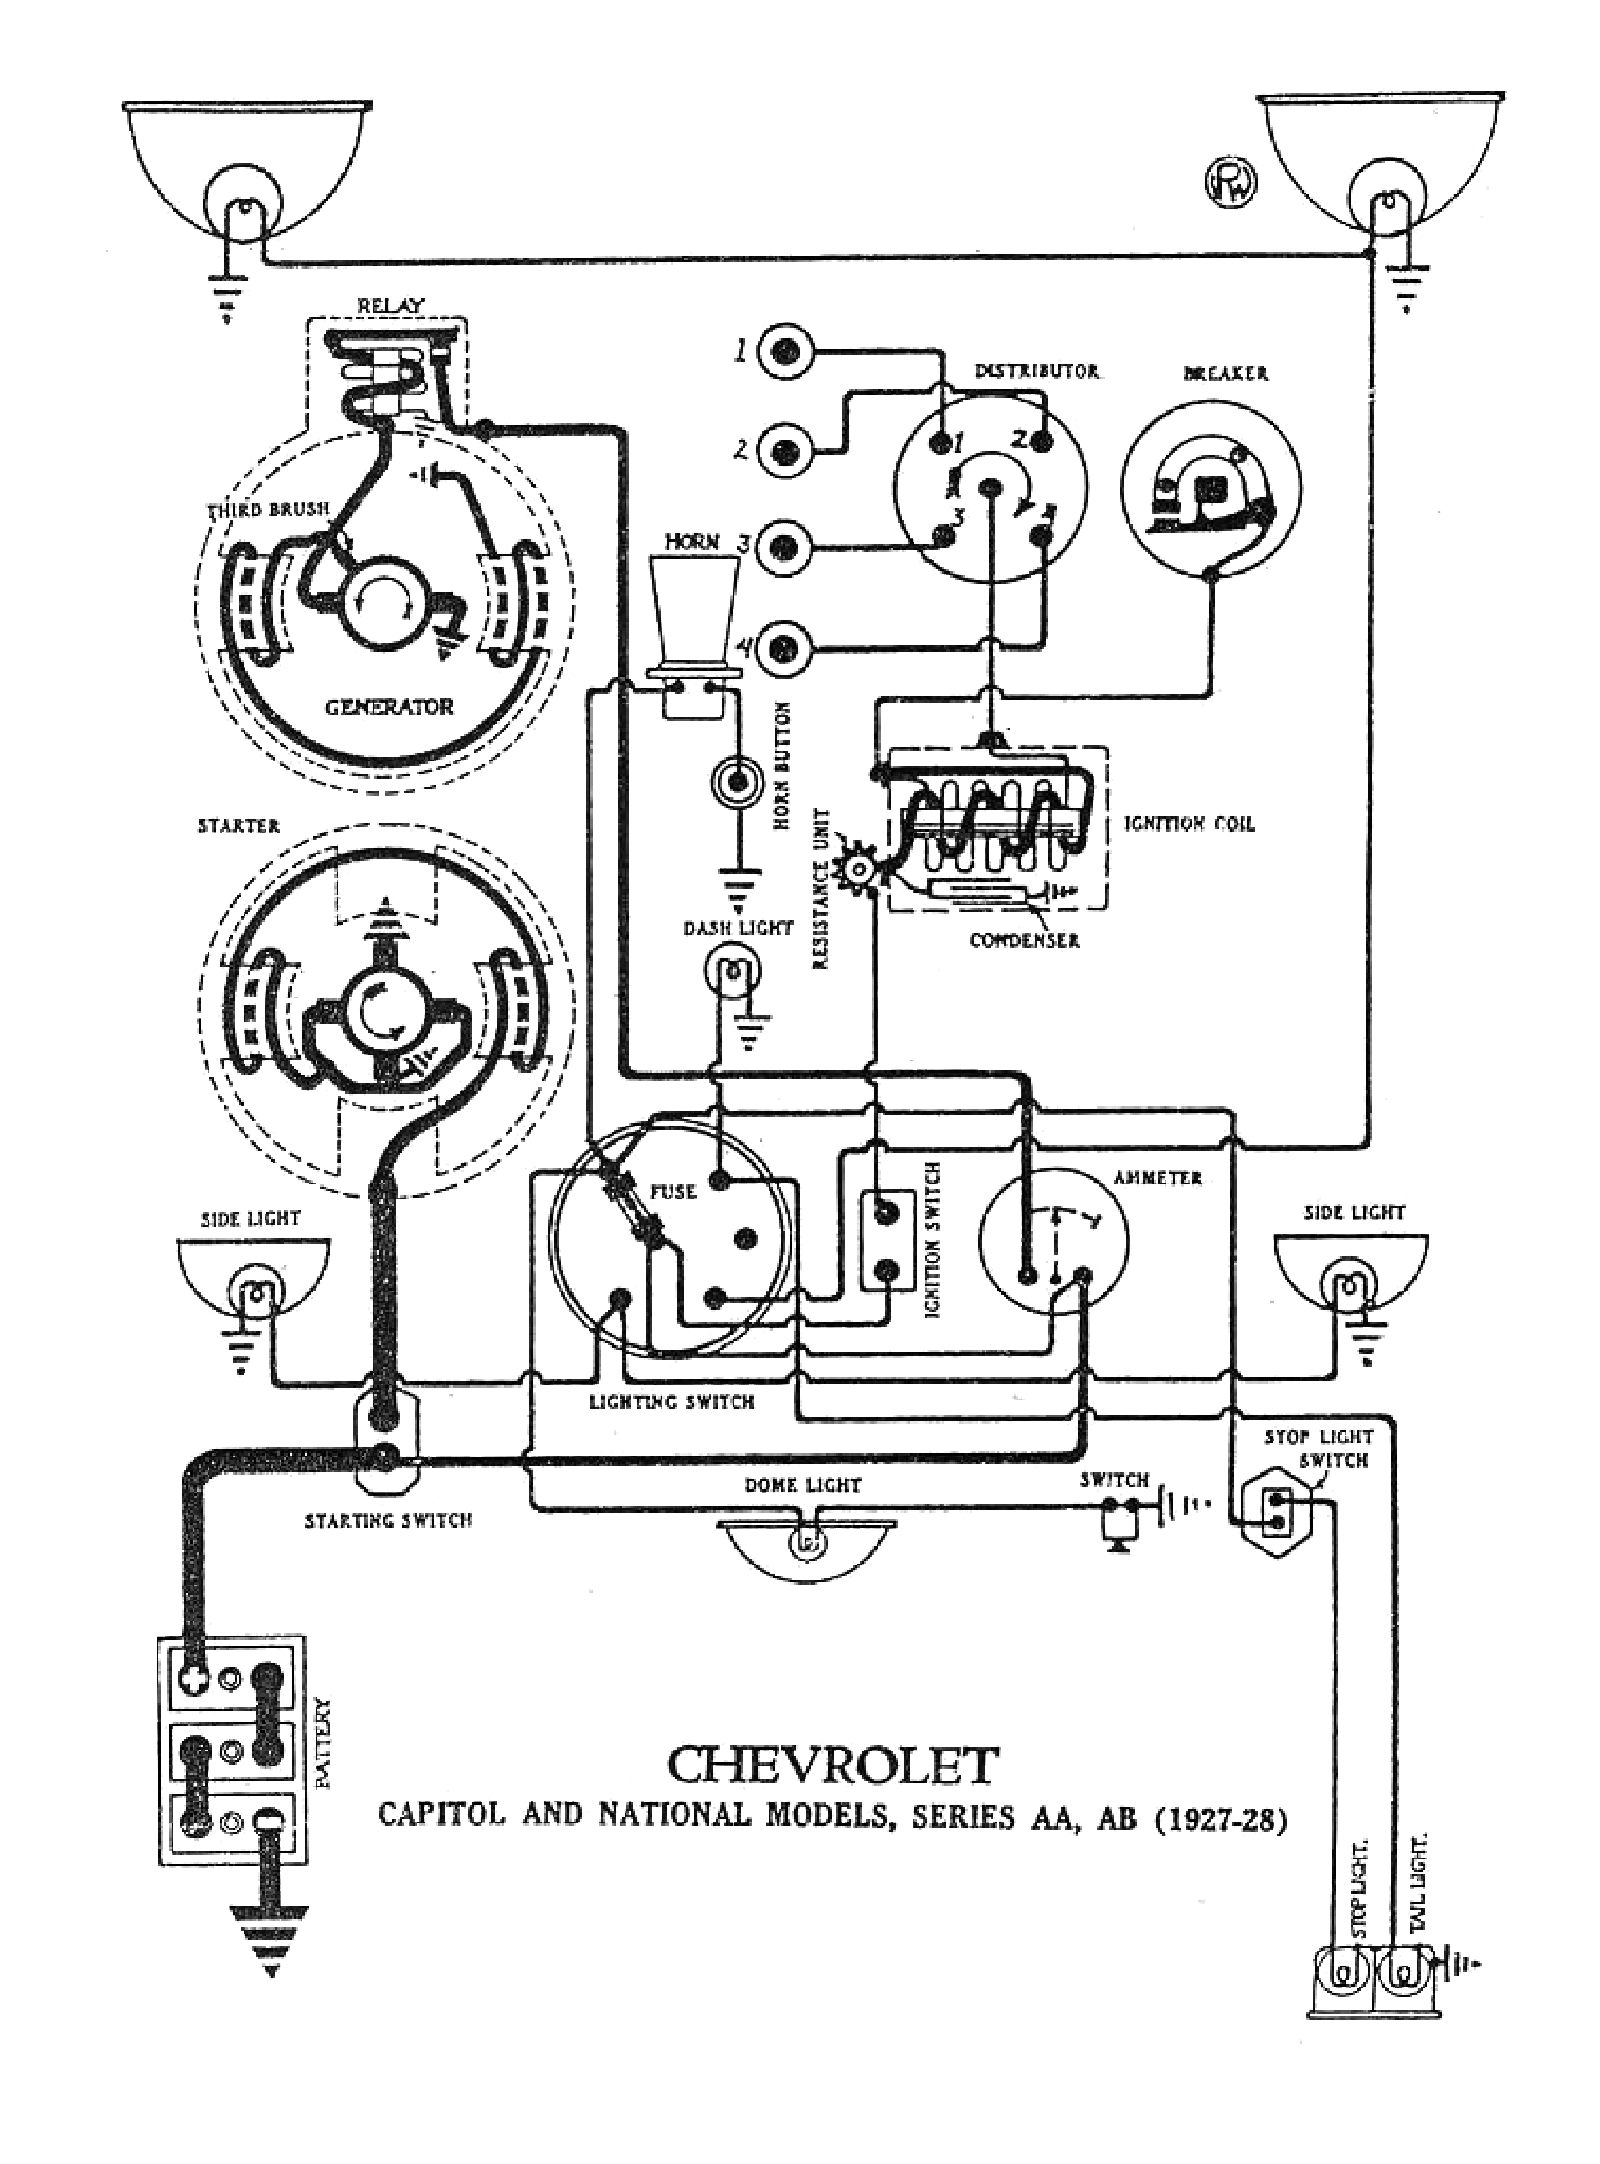 hight resolution of chevy wiring diagrams 2003 chevy wiring diagram 1927 capitol national models 1928 1928 wiring